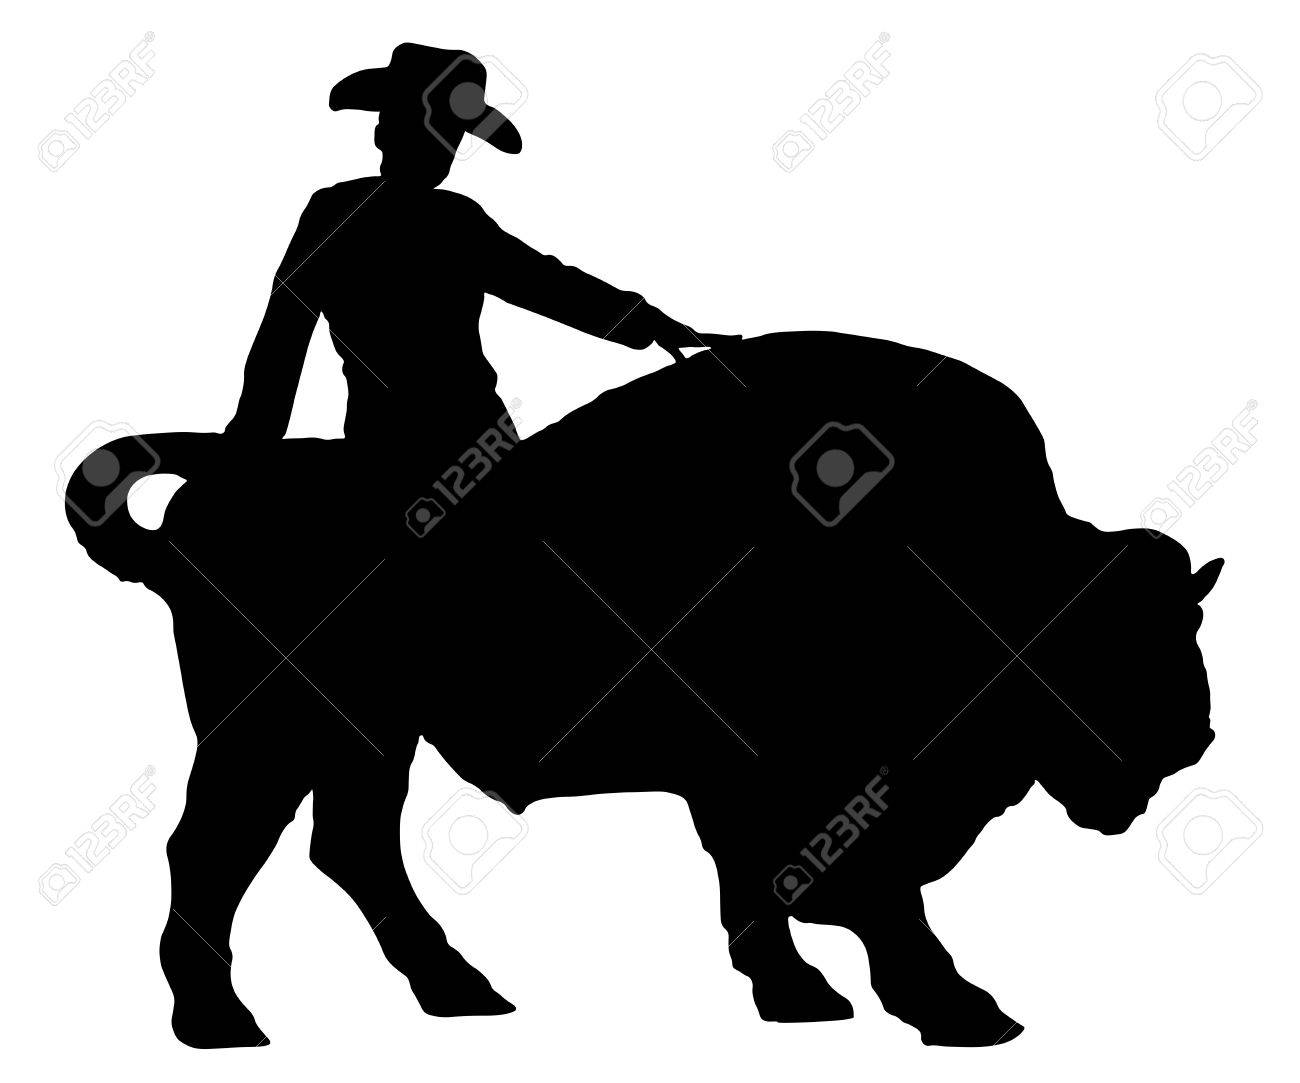 4a1b6c36 Rodeo man on a buffalo, bison, bull, silhouette